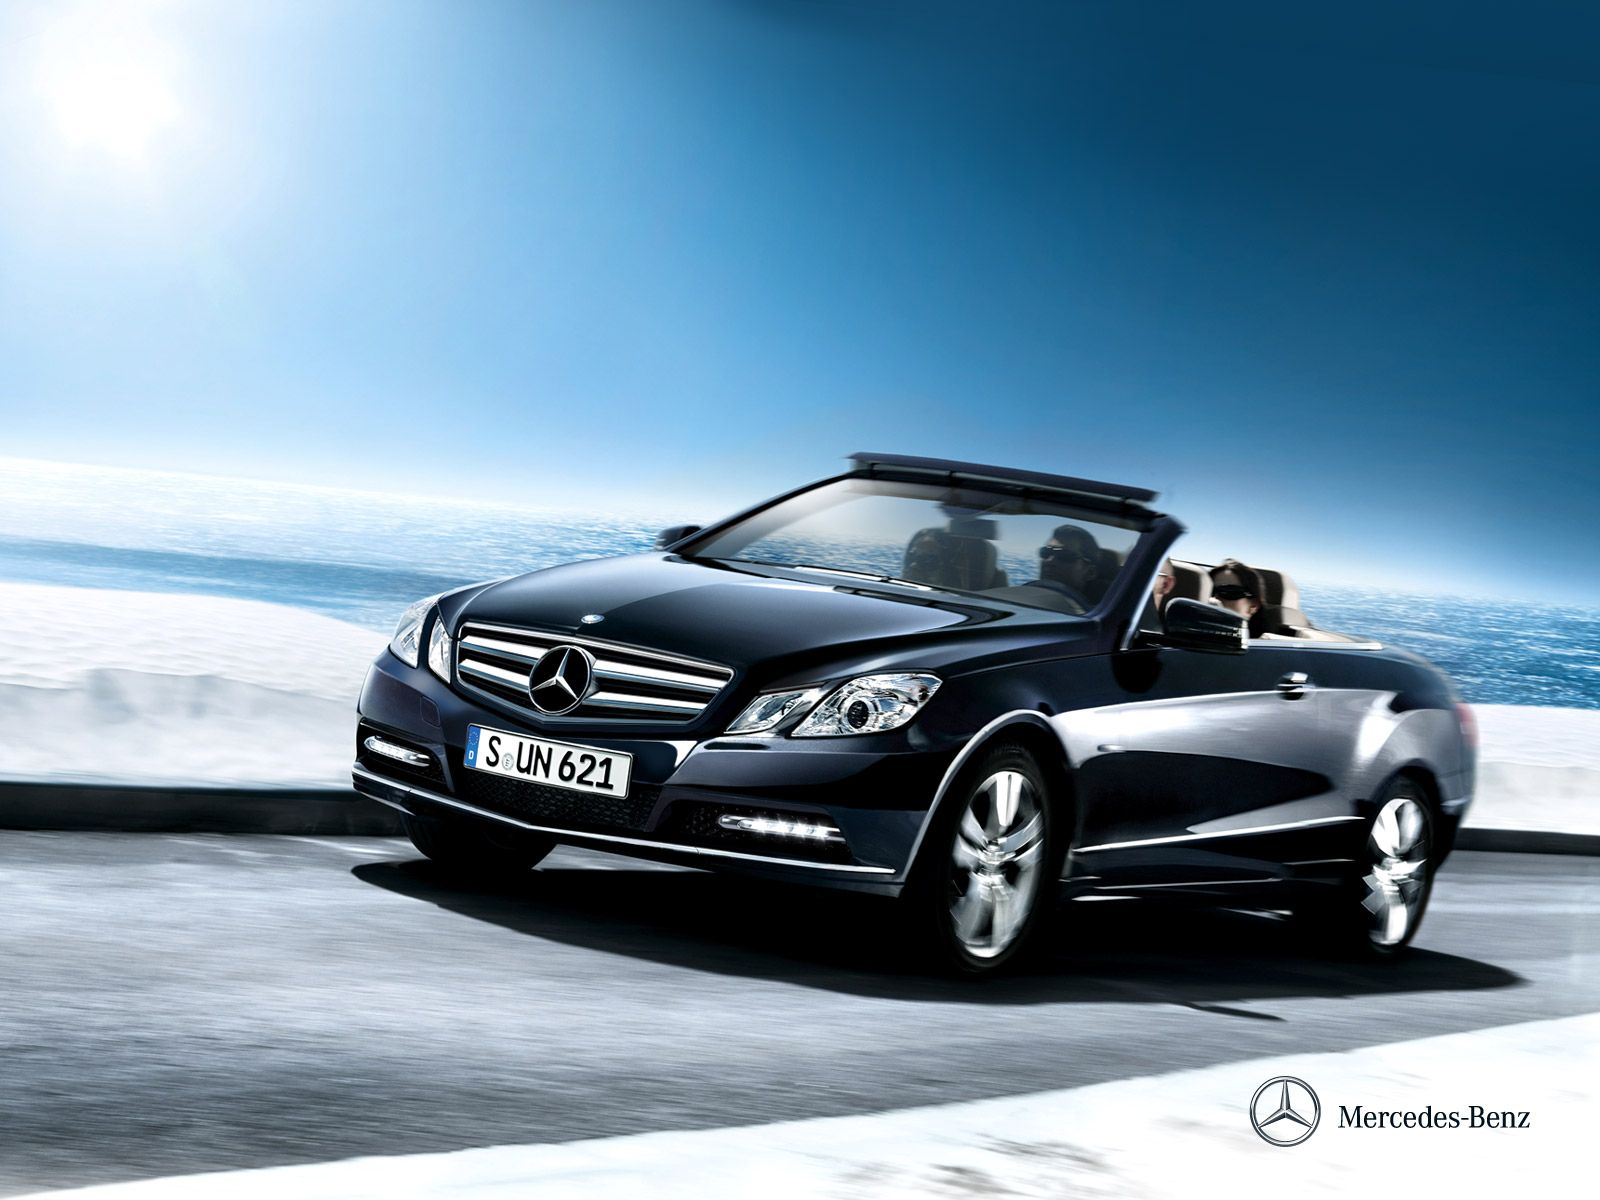 b benz special stars nearest will mercedes upon offer bhandari this you u offers the for sale dealership shine diwali